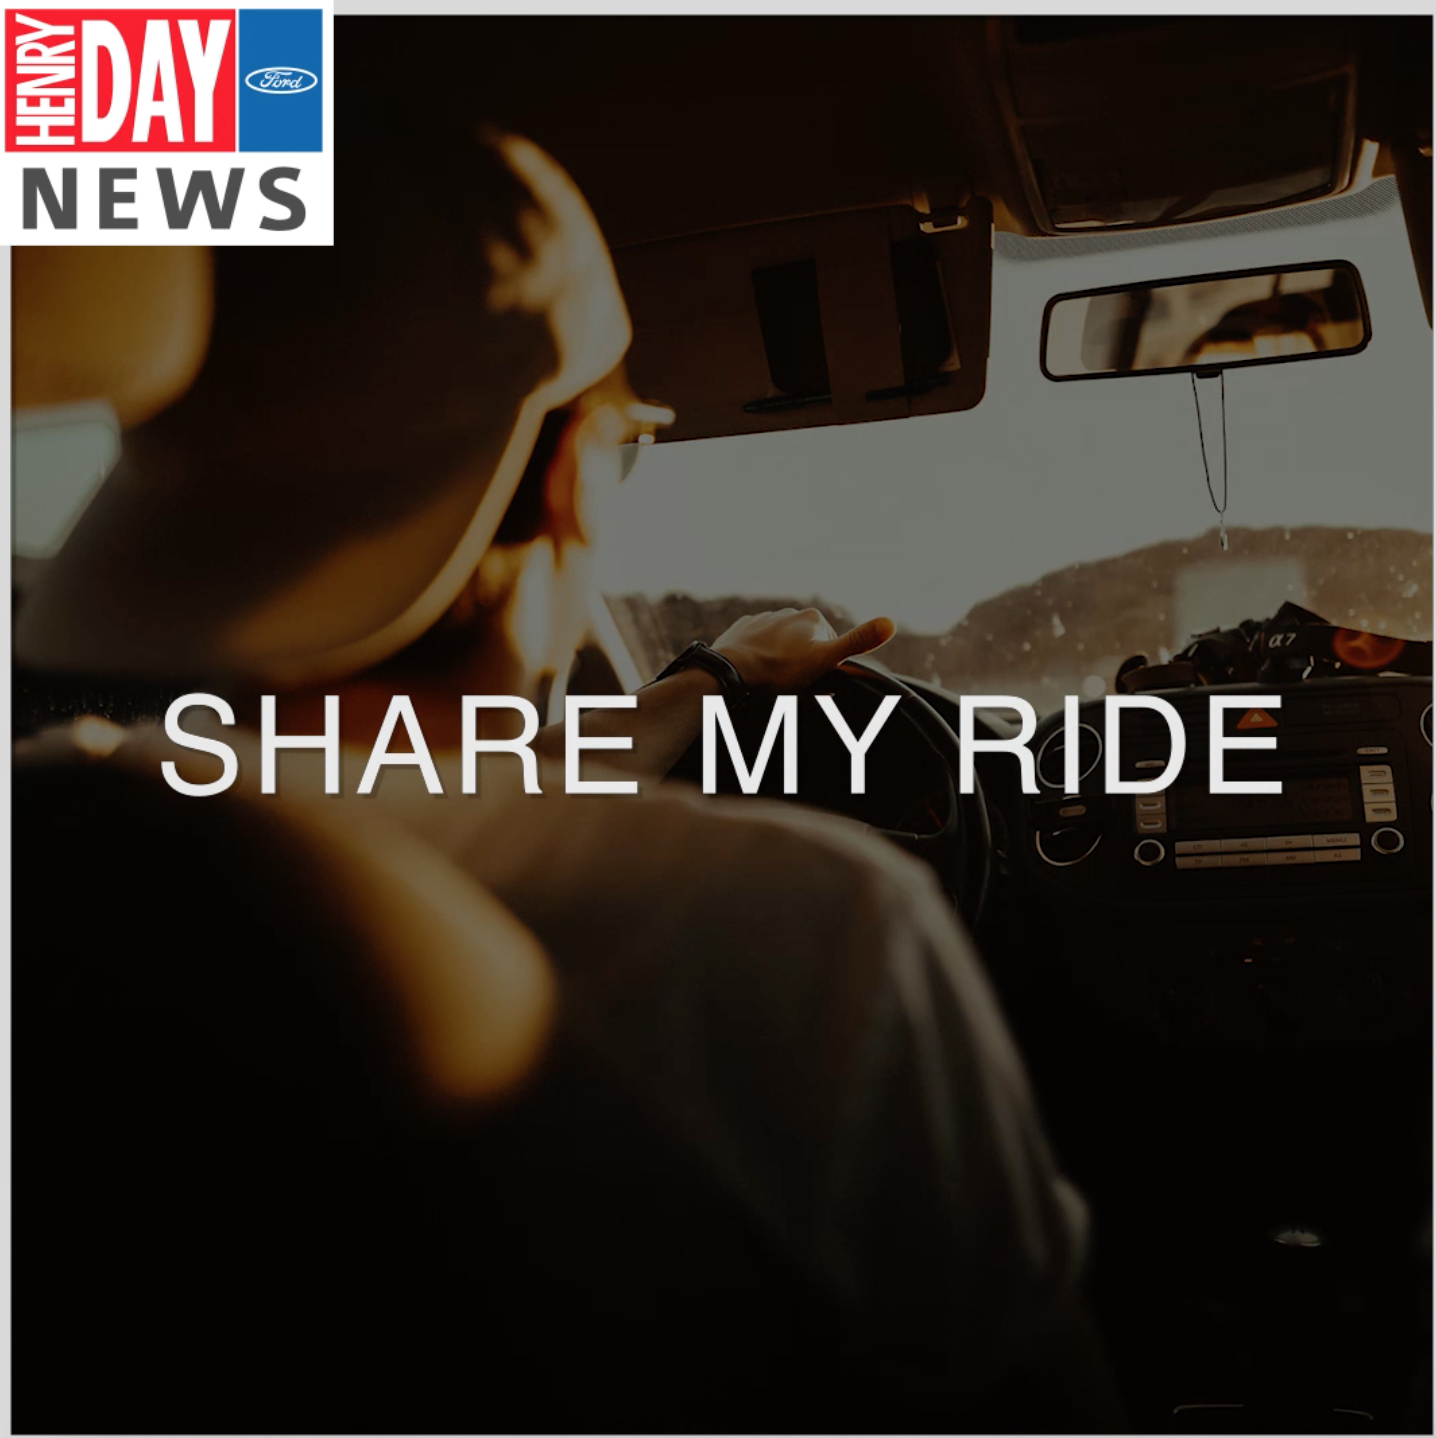 Share My Ride